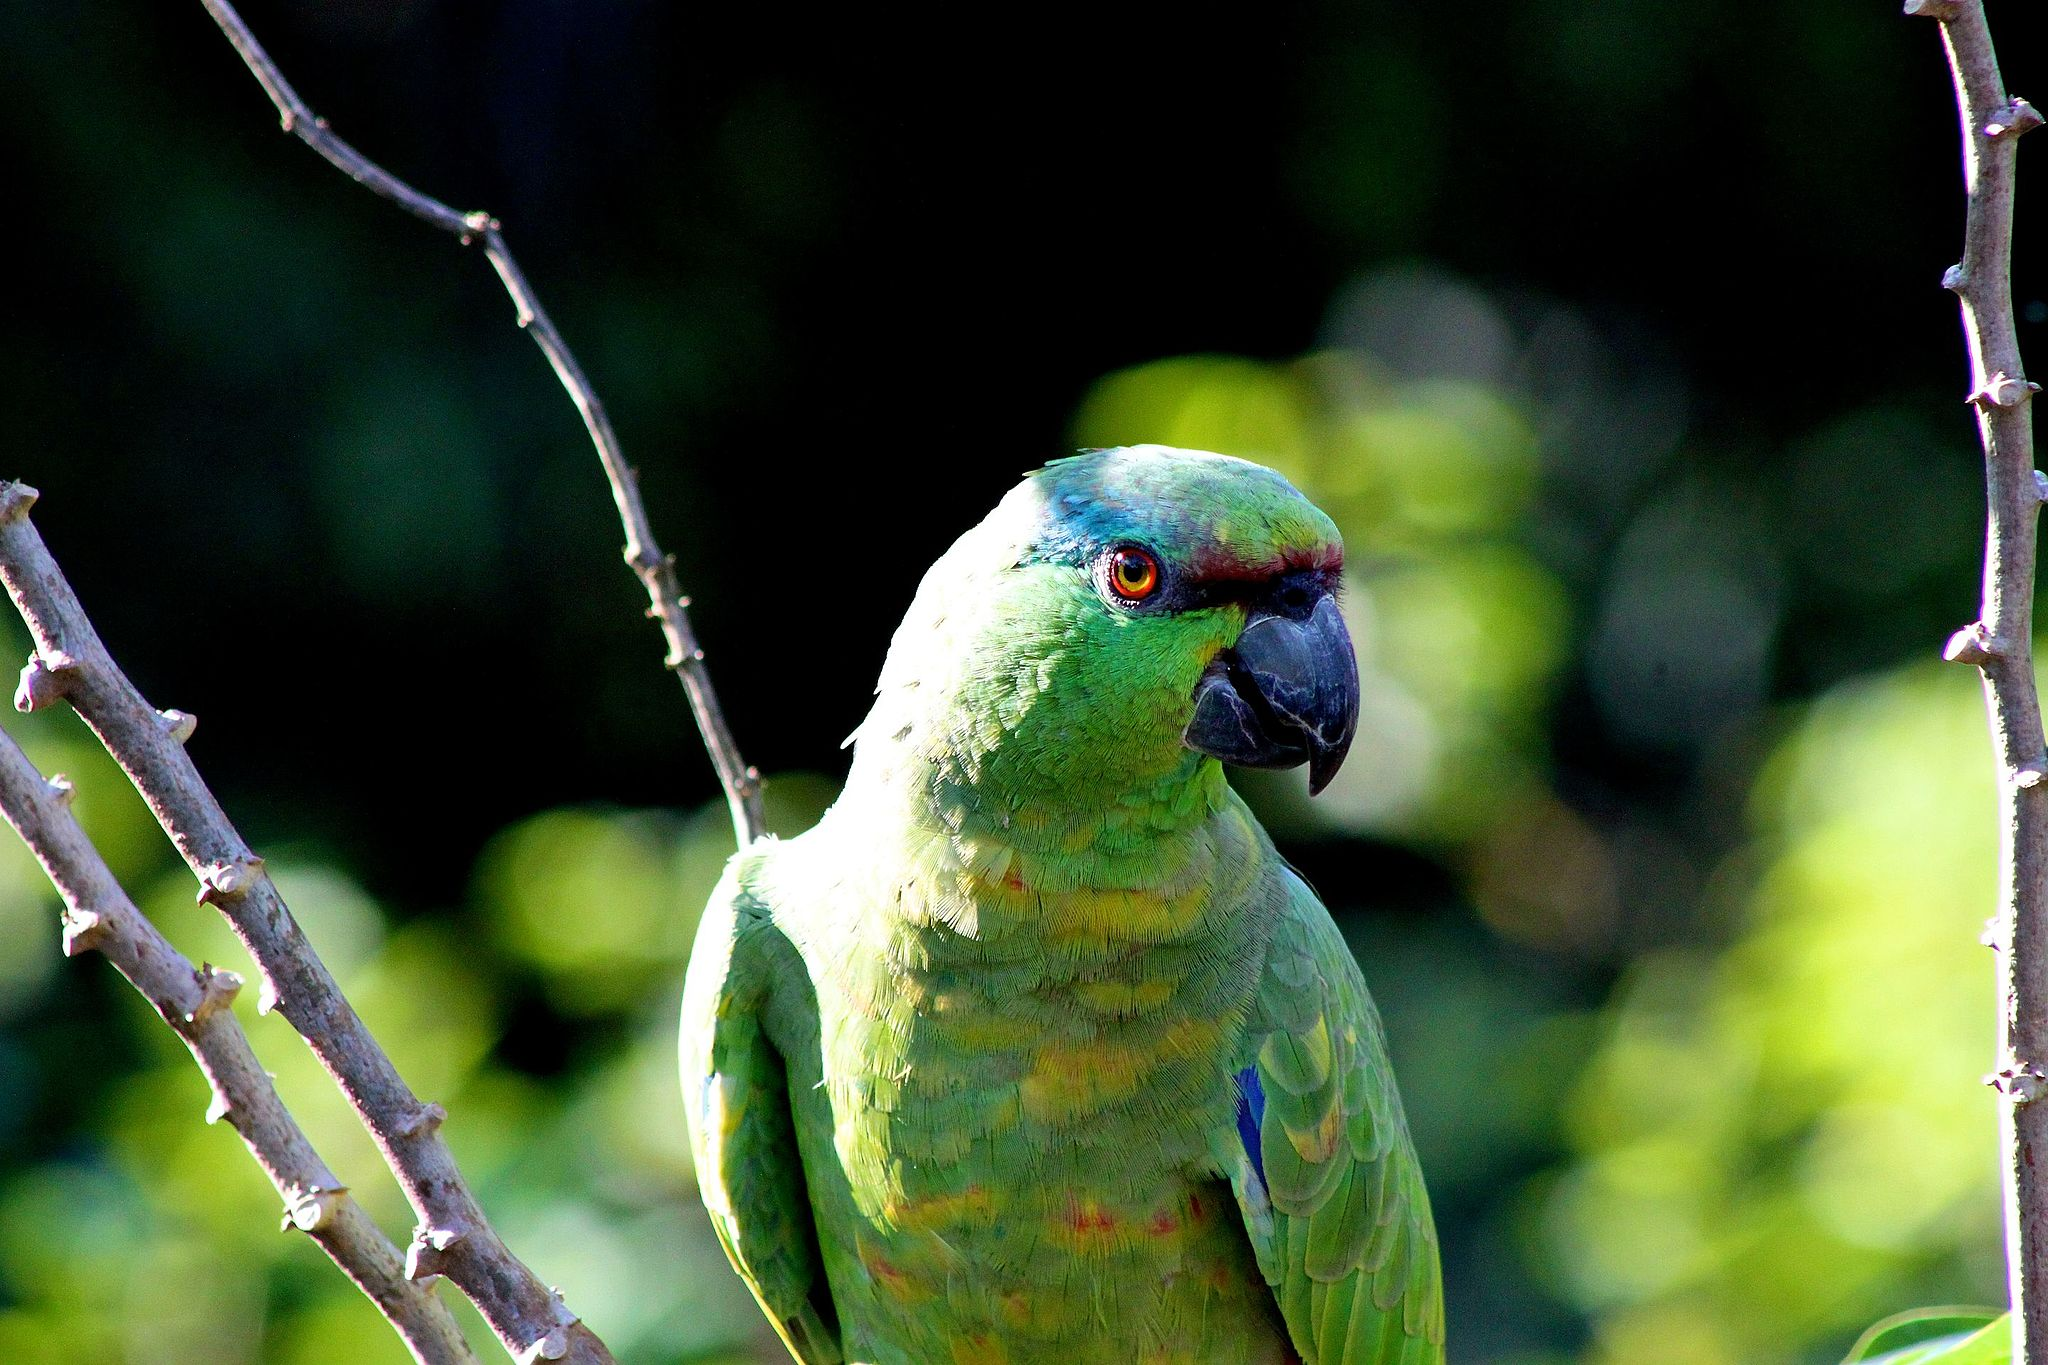 It's home to more than 1300 birds species